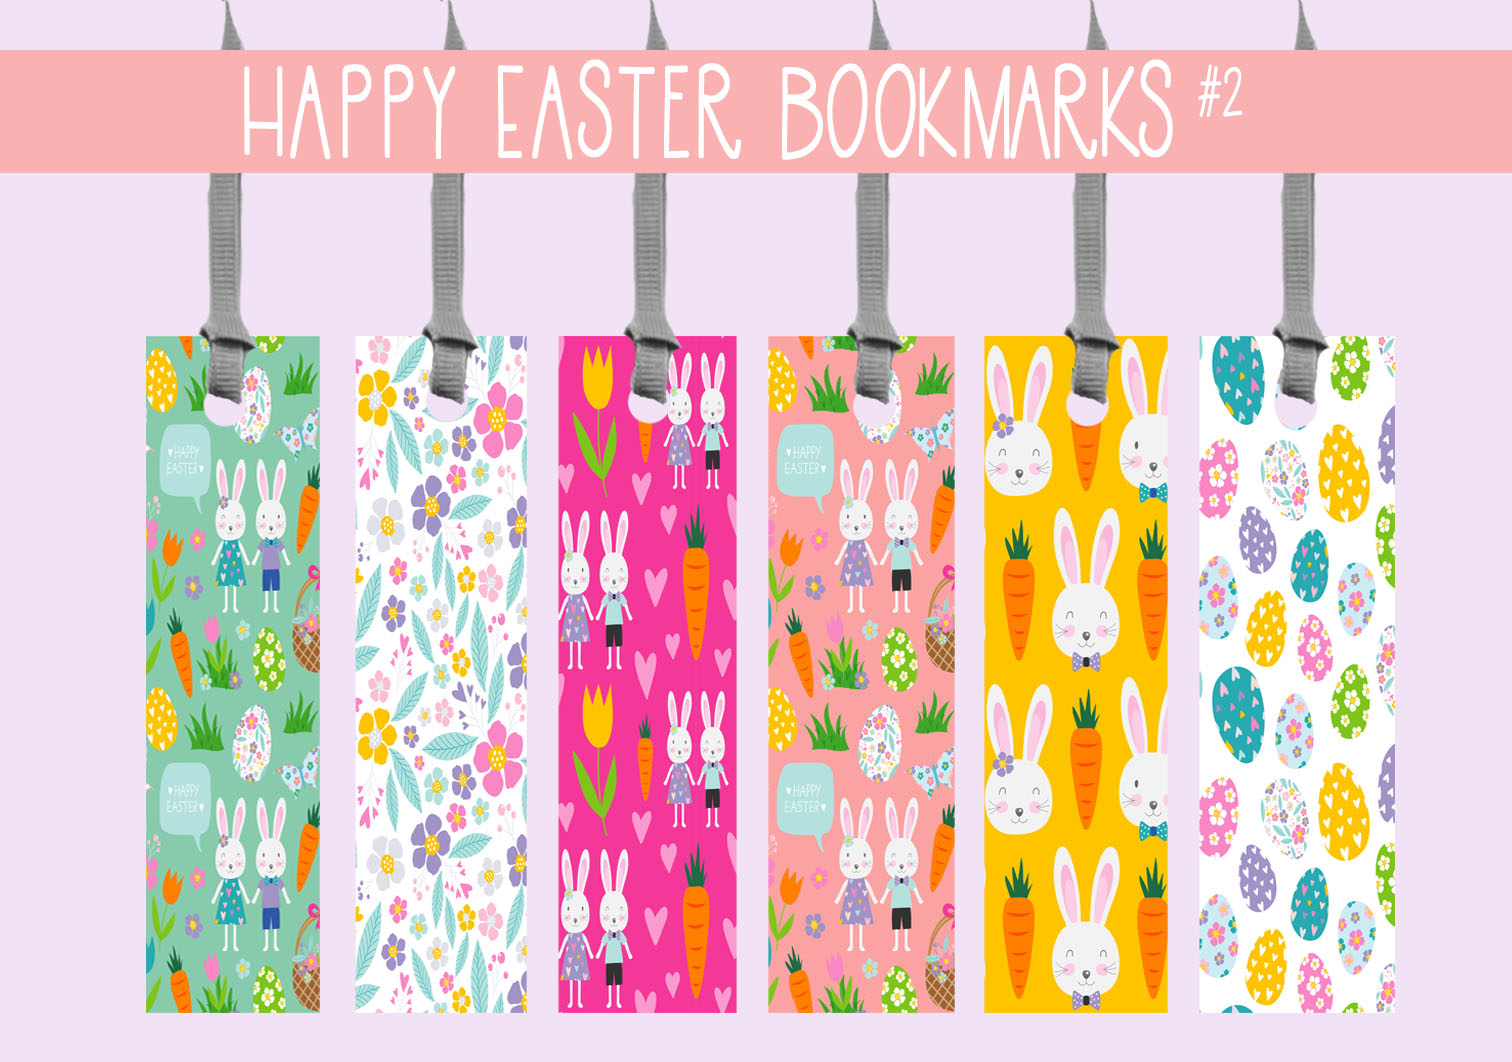 Download Free Happy Easter Bookmarks Graphic By Capeairforce Creative Fabrica for Cricut Explore, Silhouette and other cutting machines.